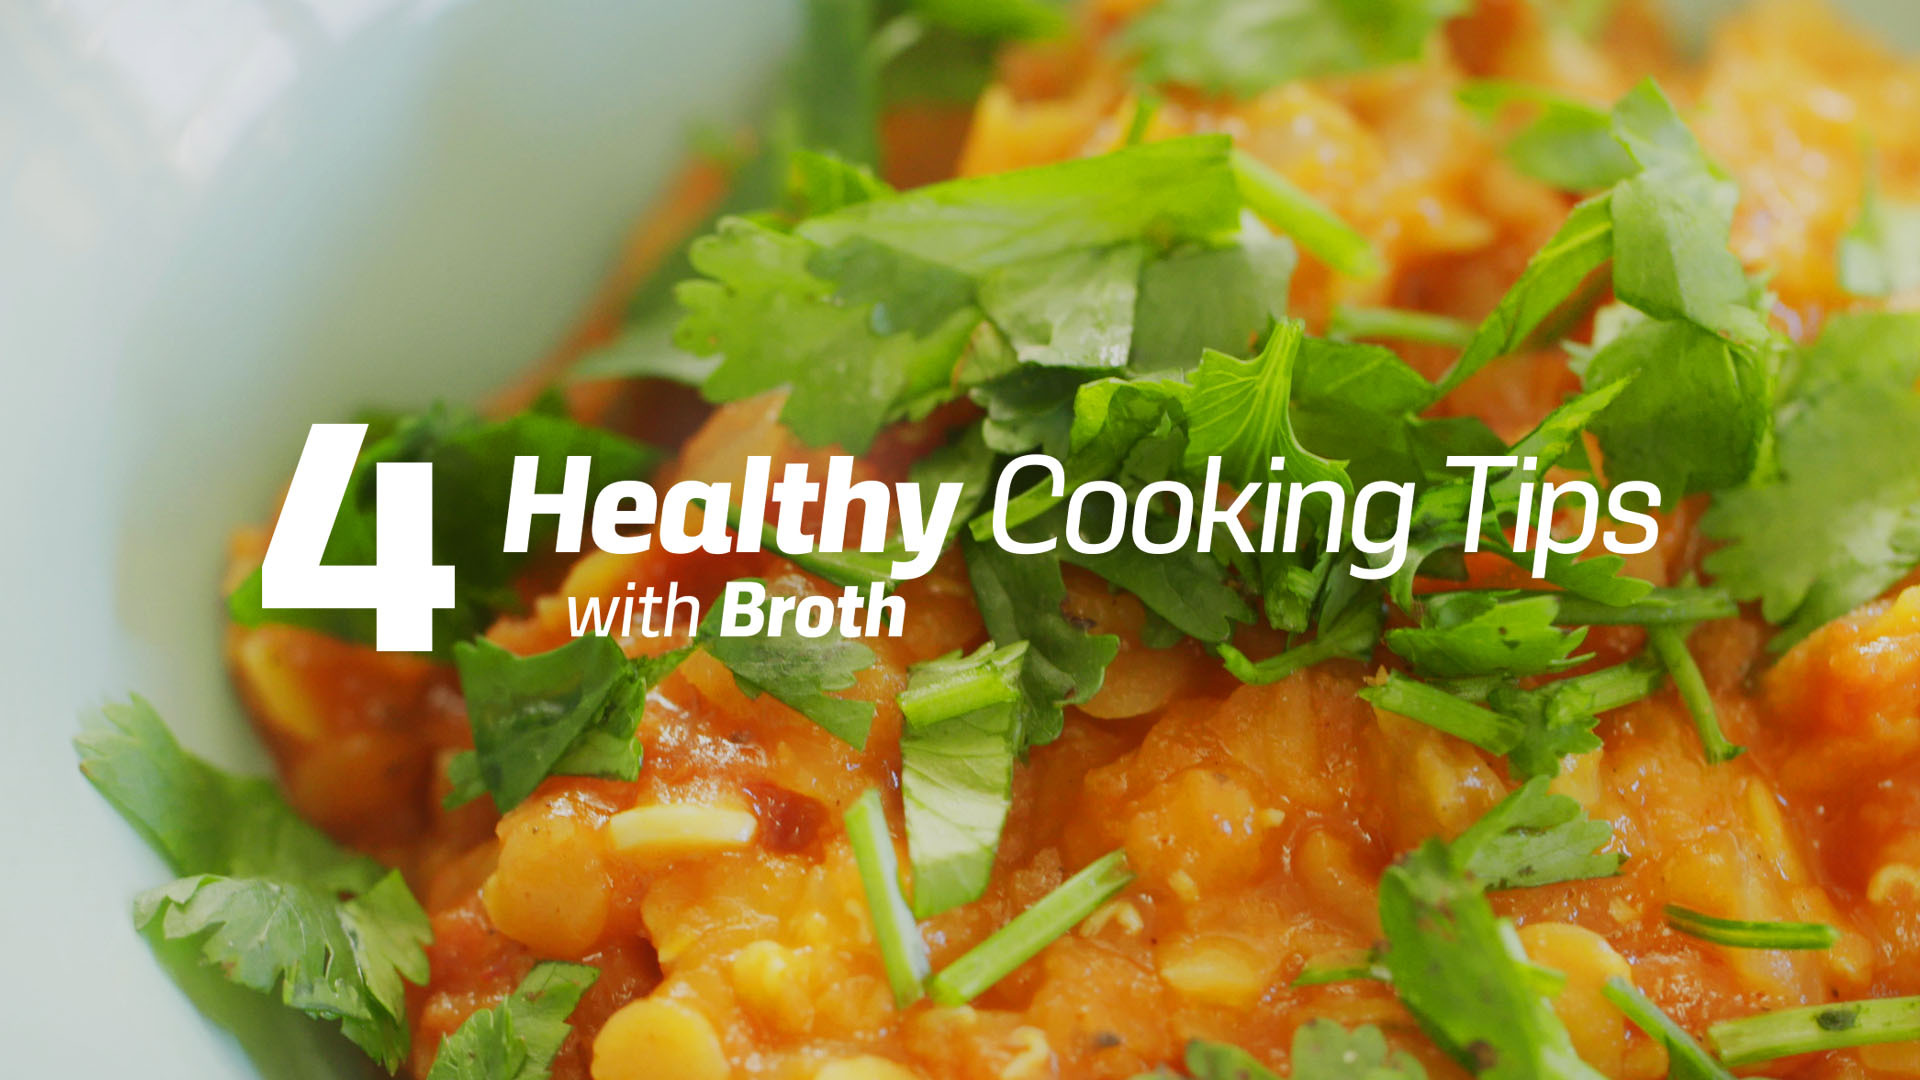 Healthy Tips from Felicia D'Ambrosio | Obey The Broth